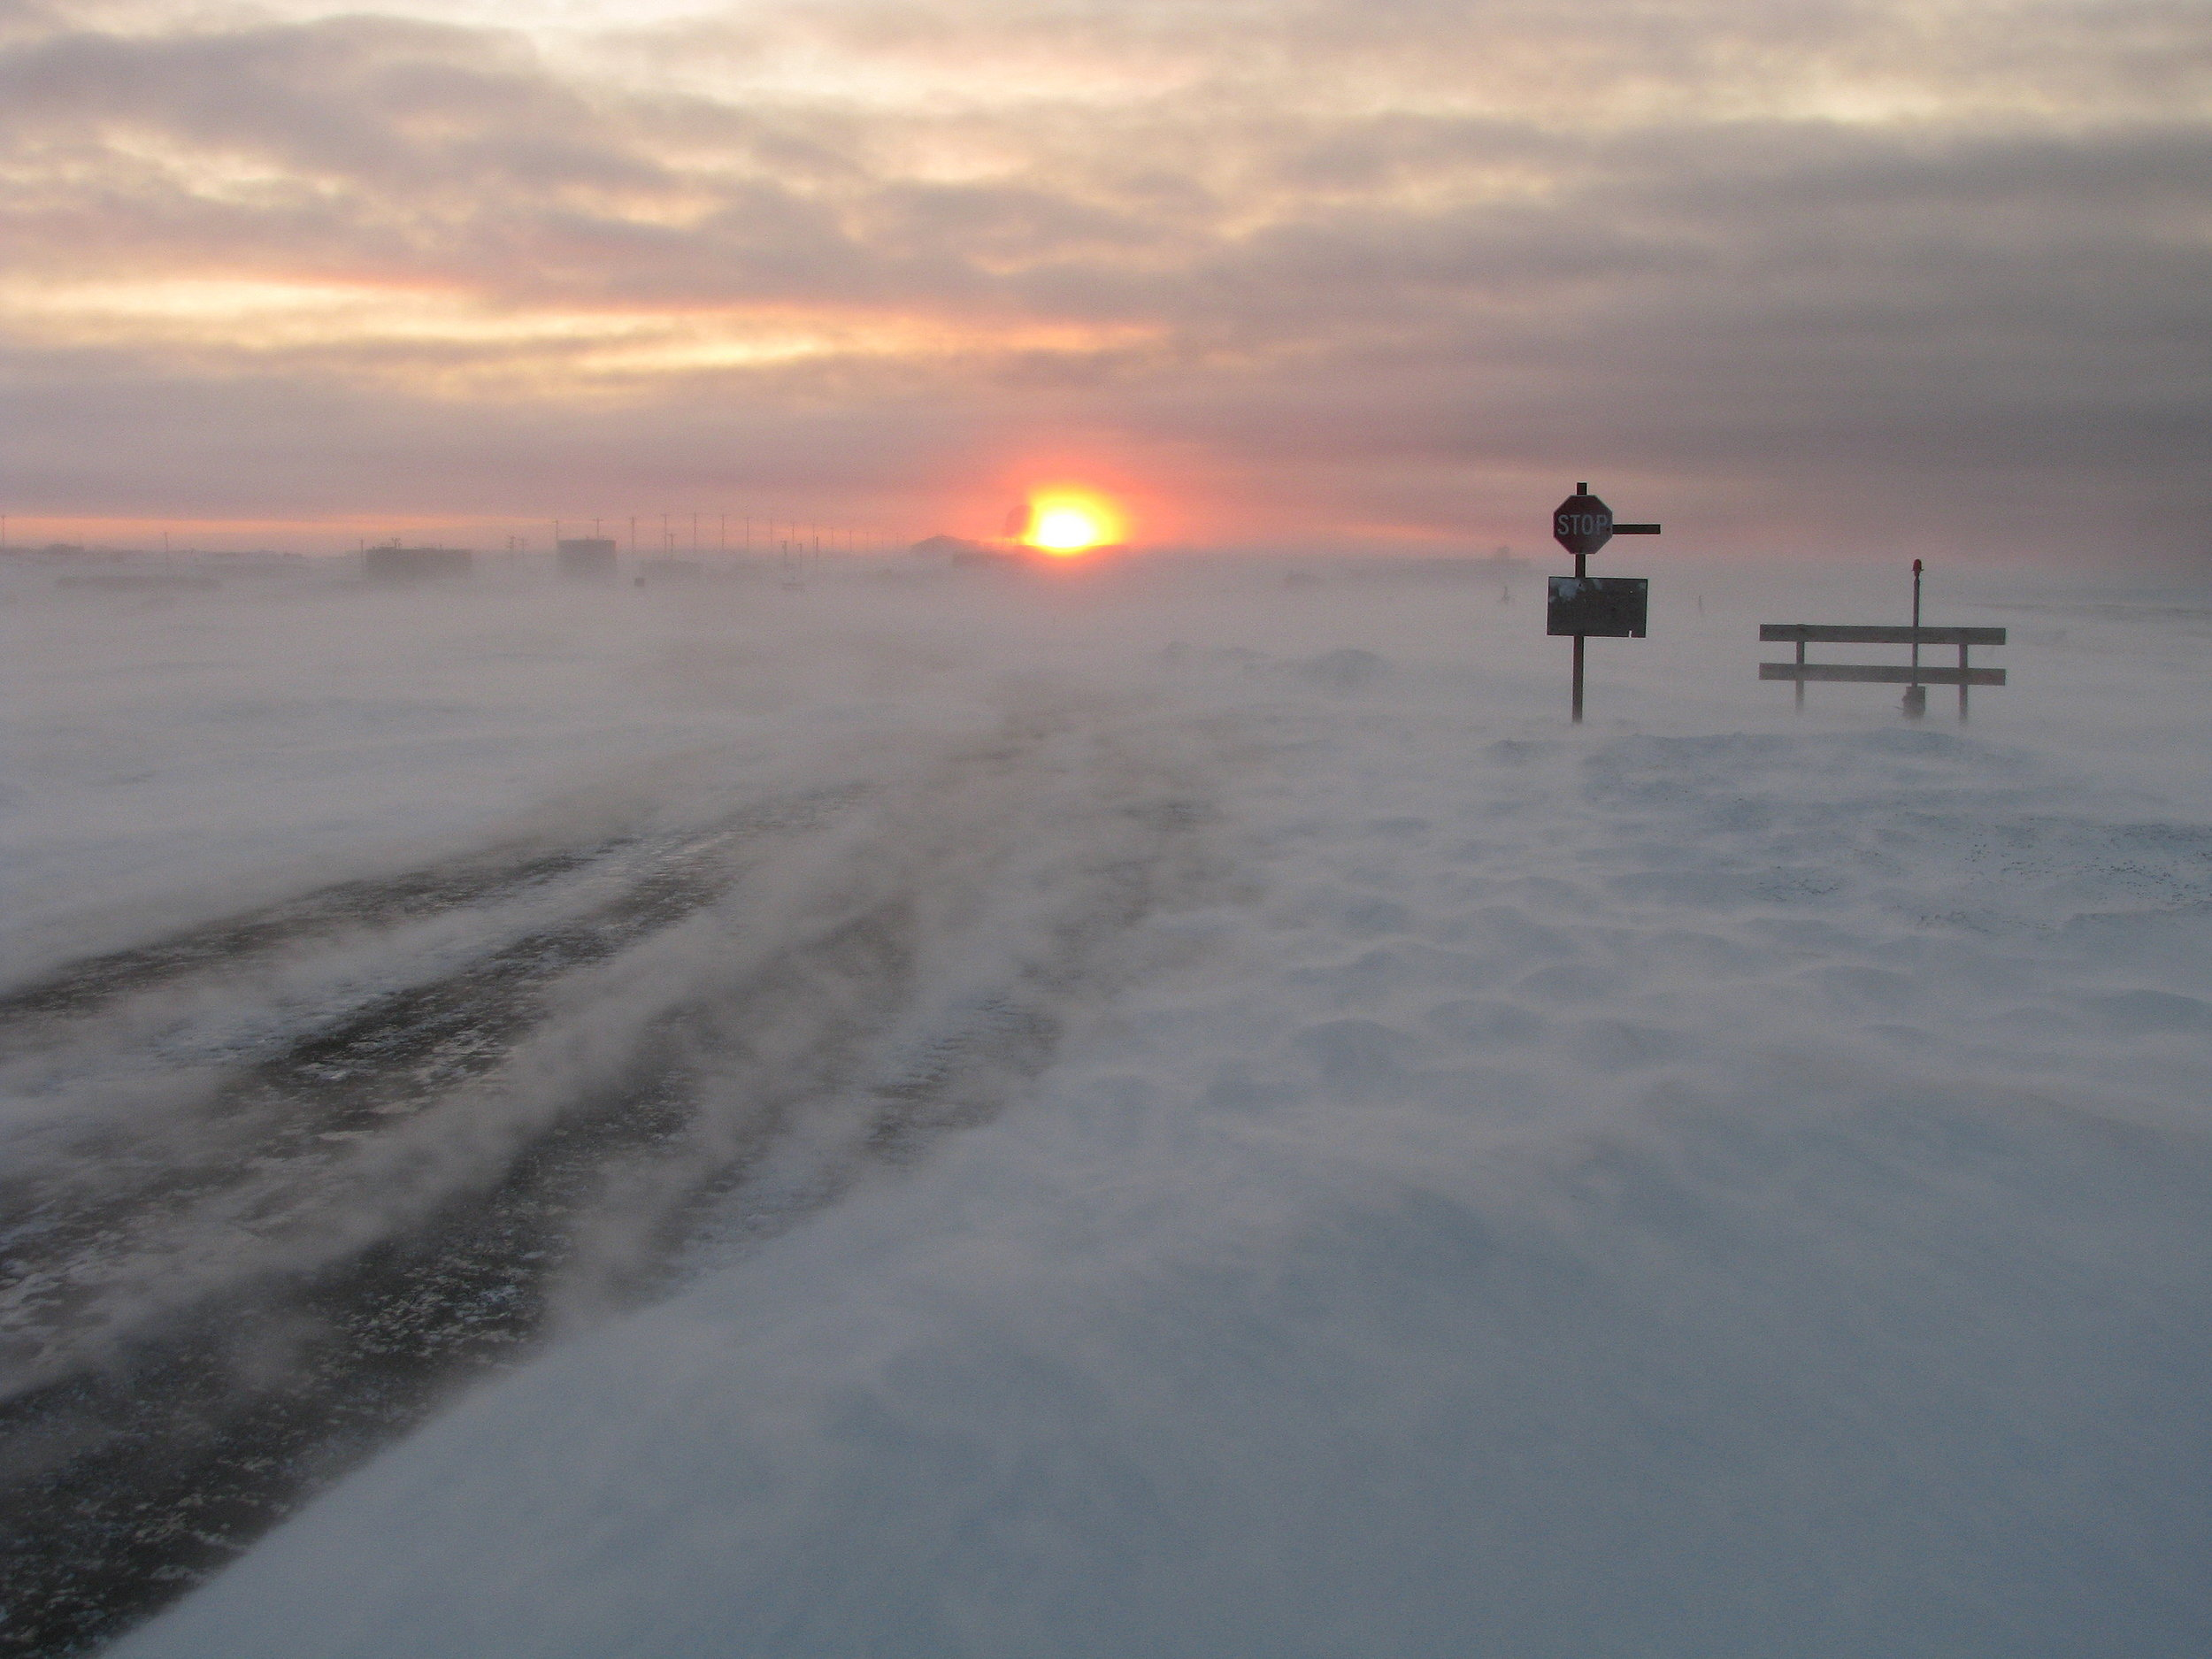 Frequent arctic blizzards--like this one near the coastal village of Kaktovik--can bring rumbling gales, poor visibility, and wind chills to a hundred below zero or colder.